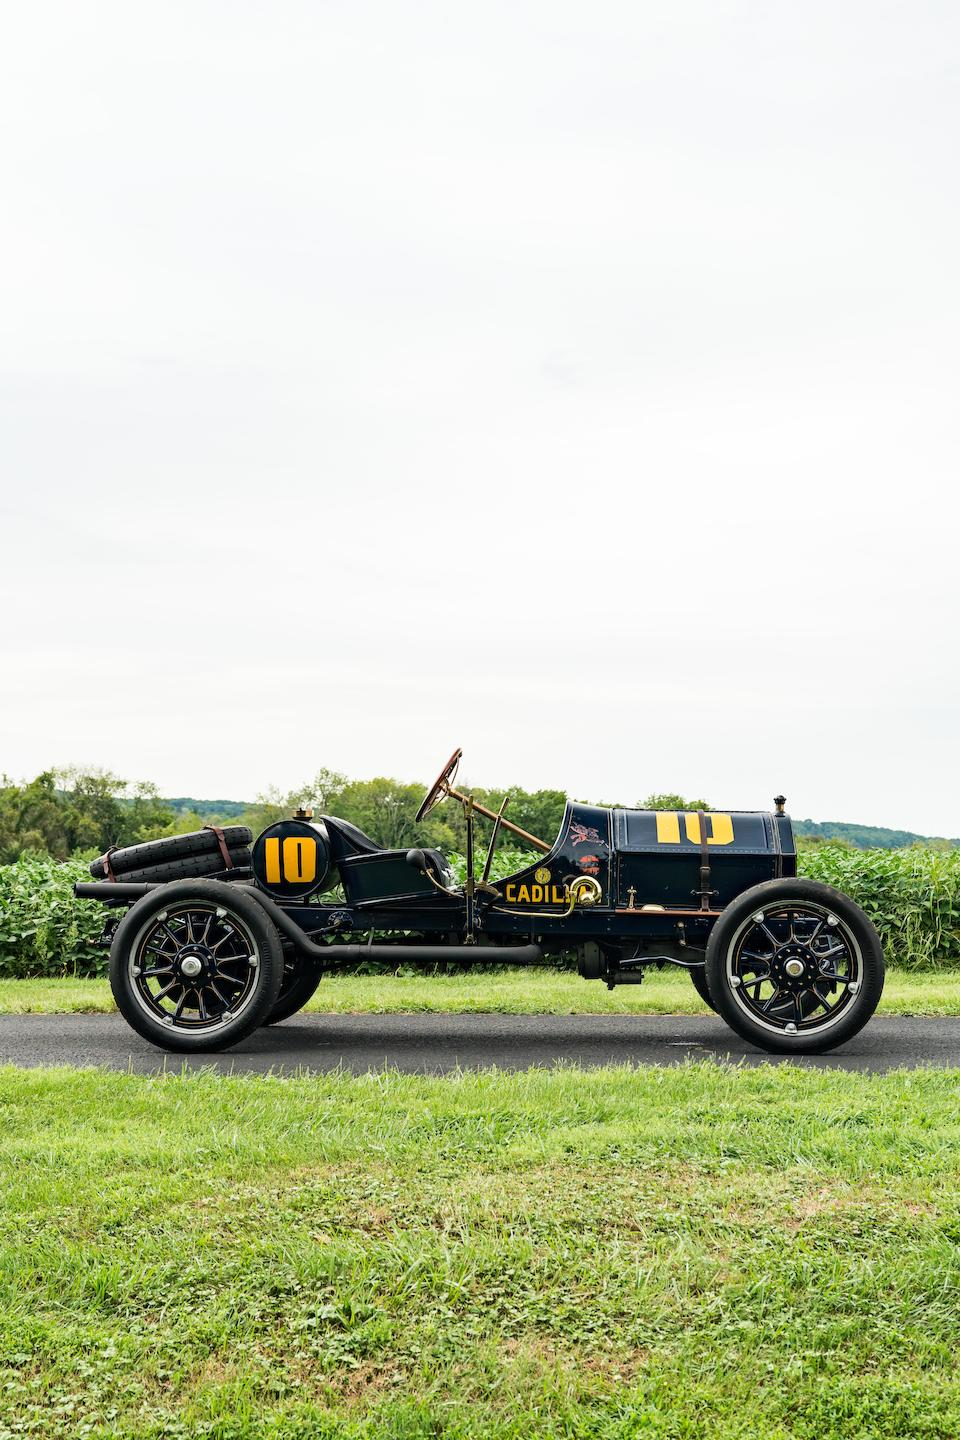 <b>1910 Cadillac Racer</b><br />Engine no. 46746